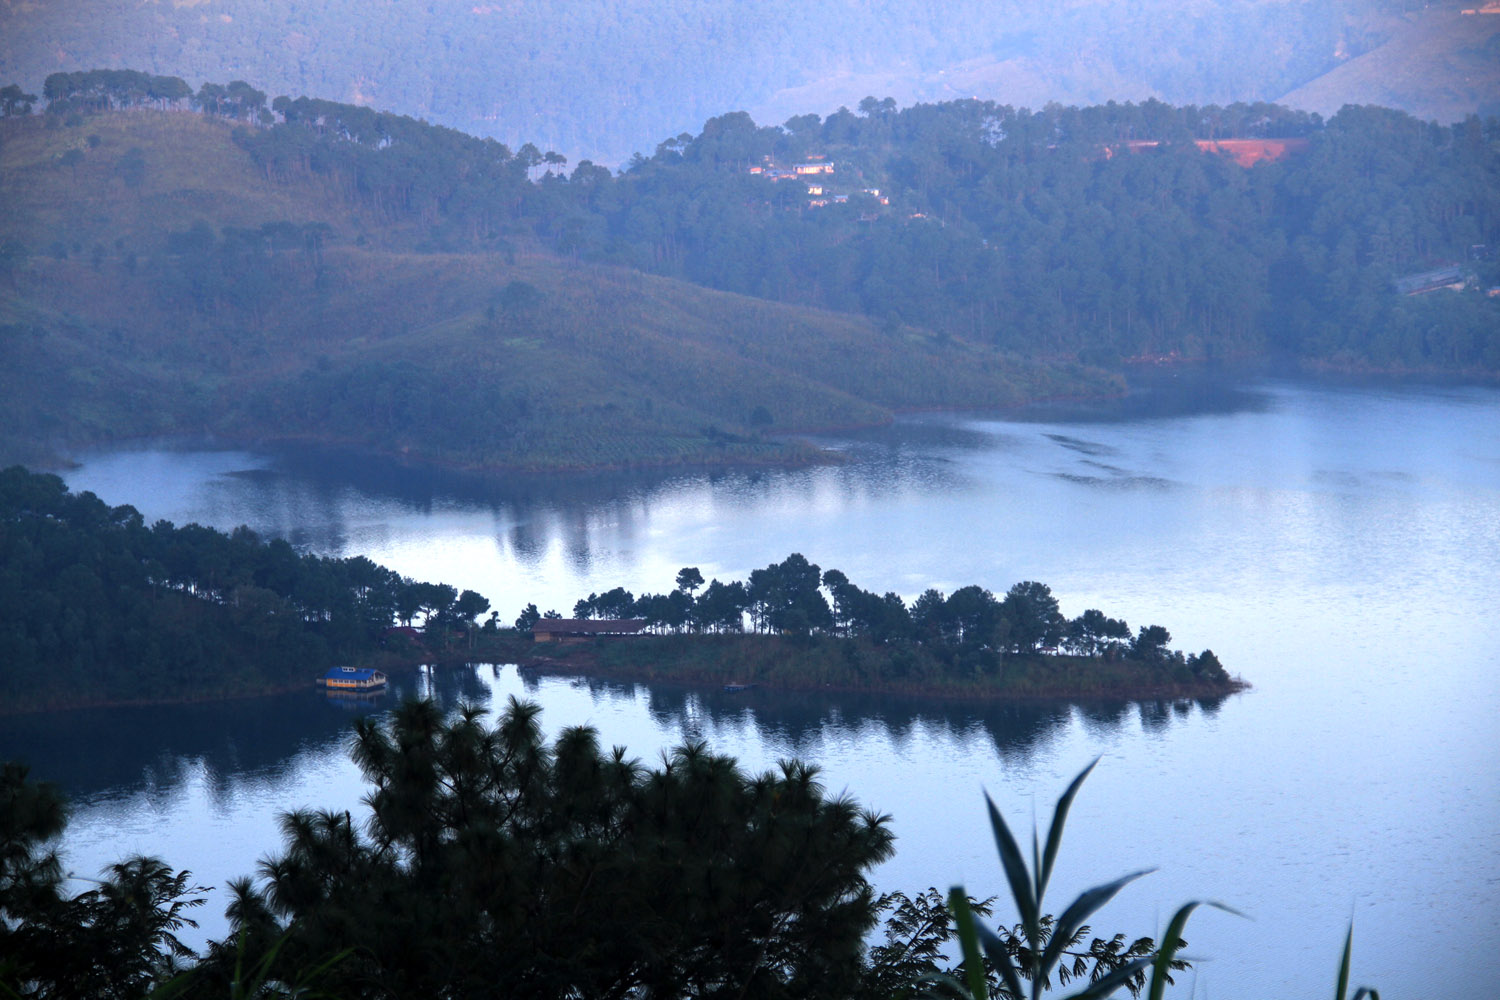 A bird's eye view of Umiam lake a must-see from the places to visit near Shillong.